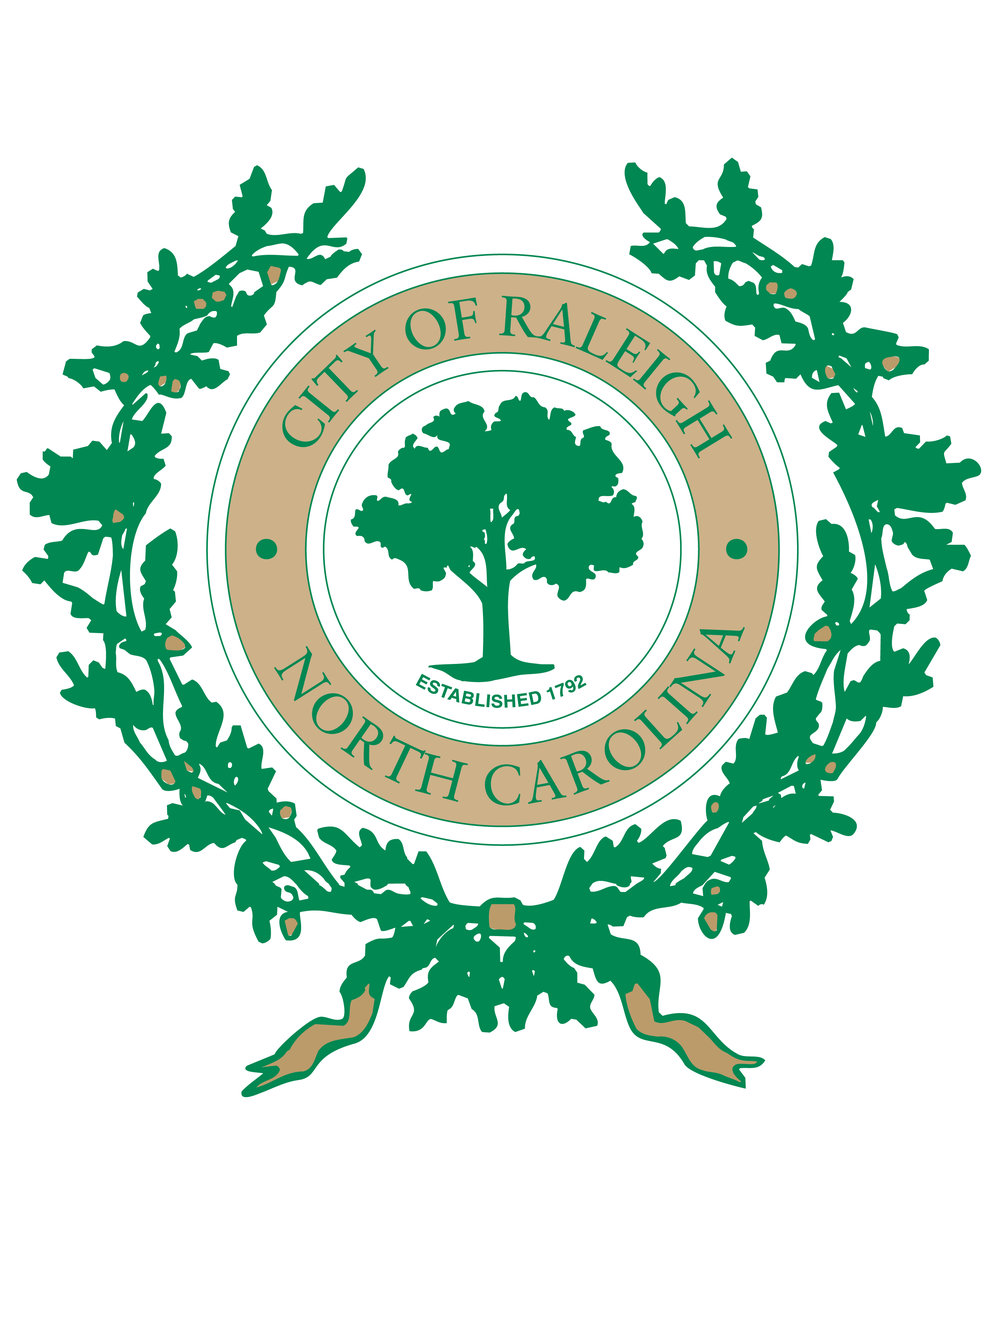 Raleigh-City-Seal-2015-2016-Color-Large.jpg